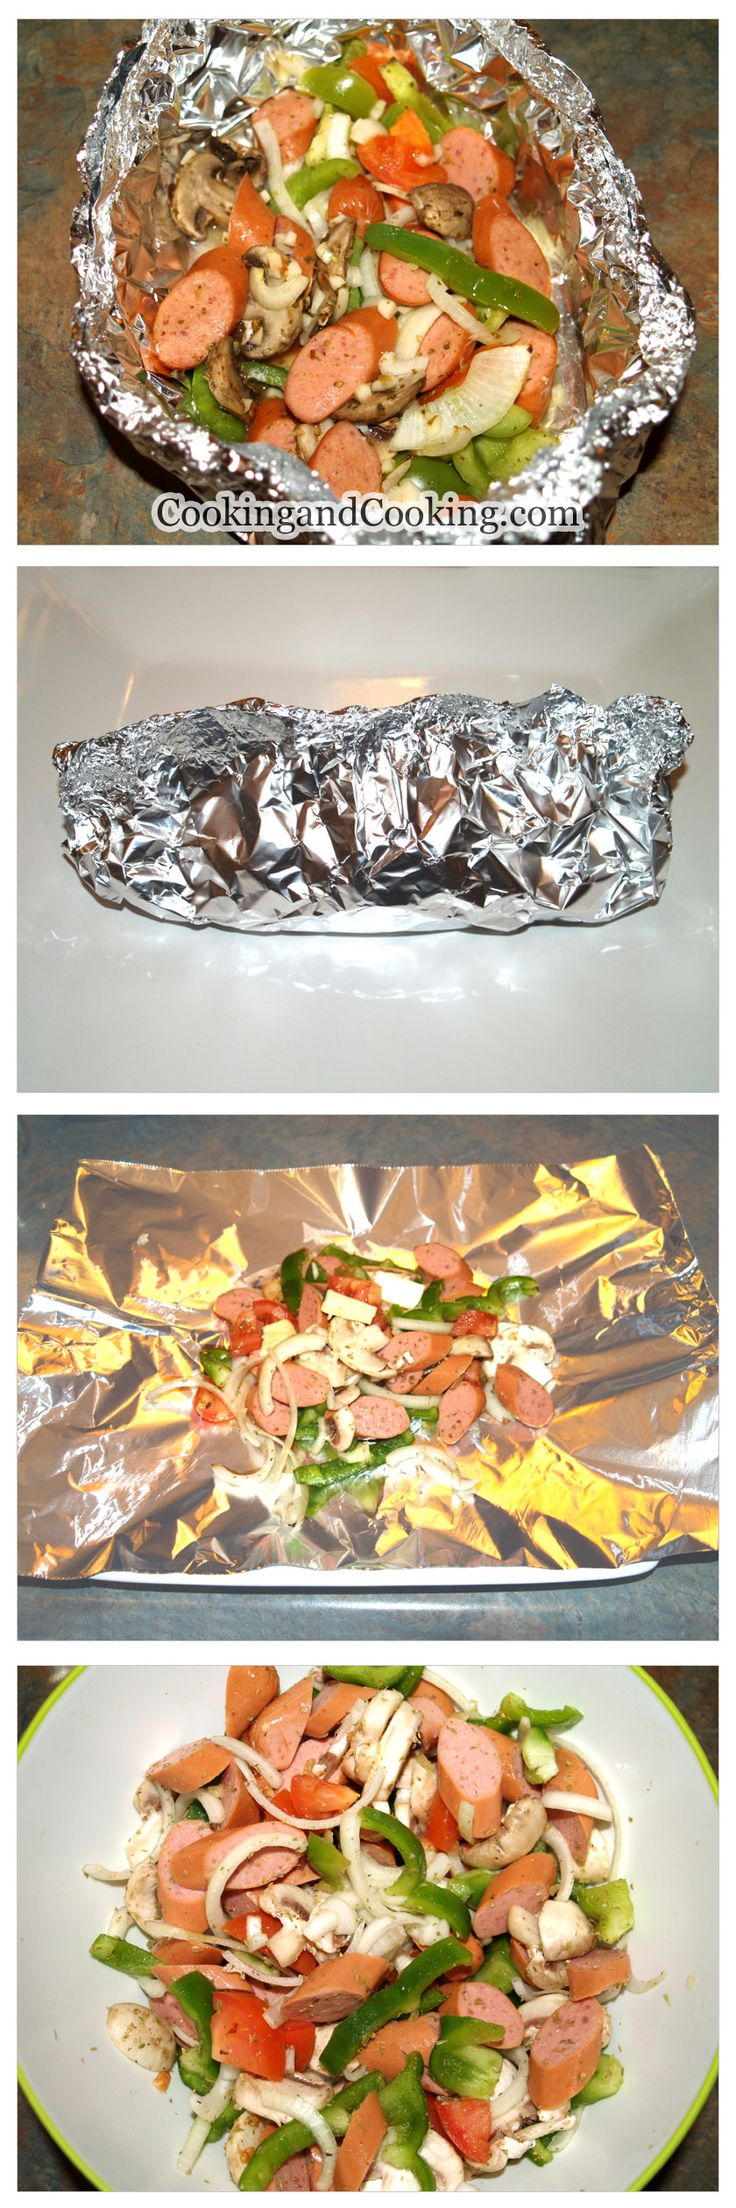 Sausage and Vegetables in Foil Packet Recipe